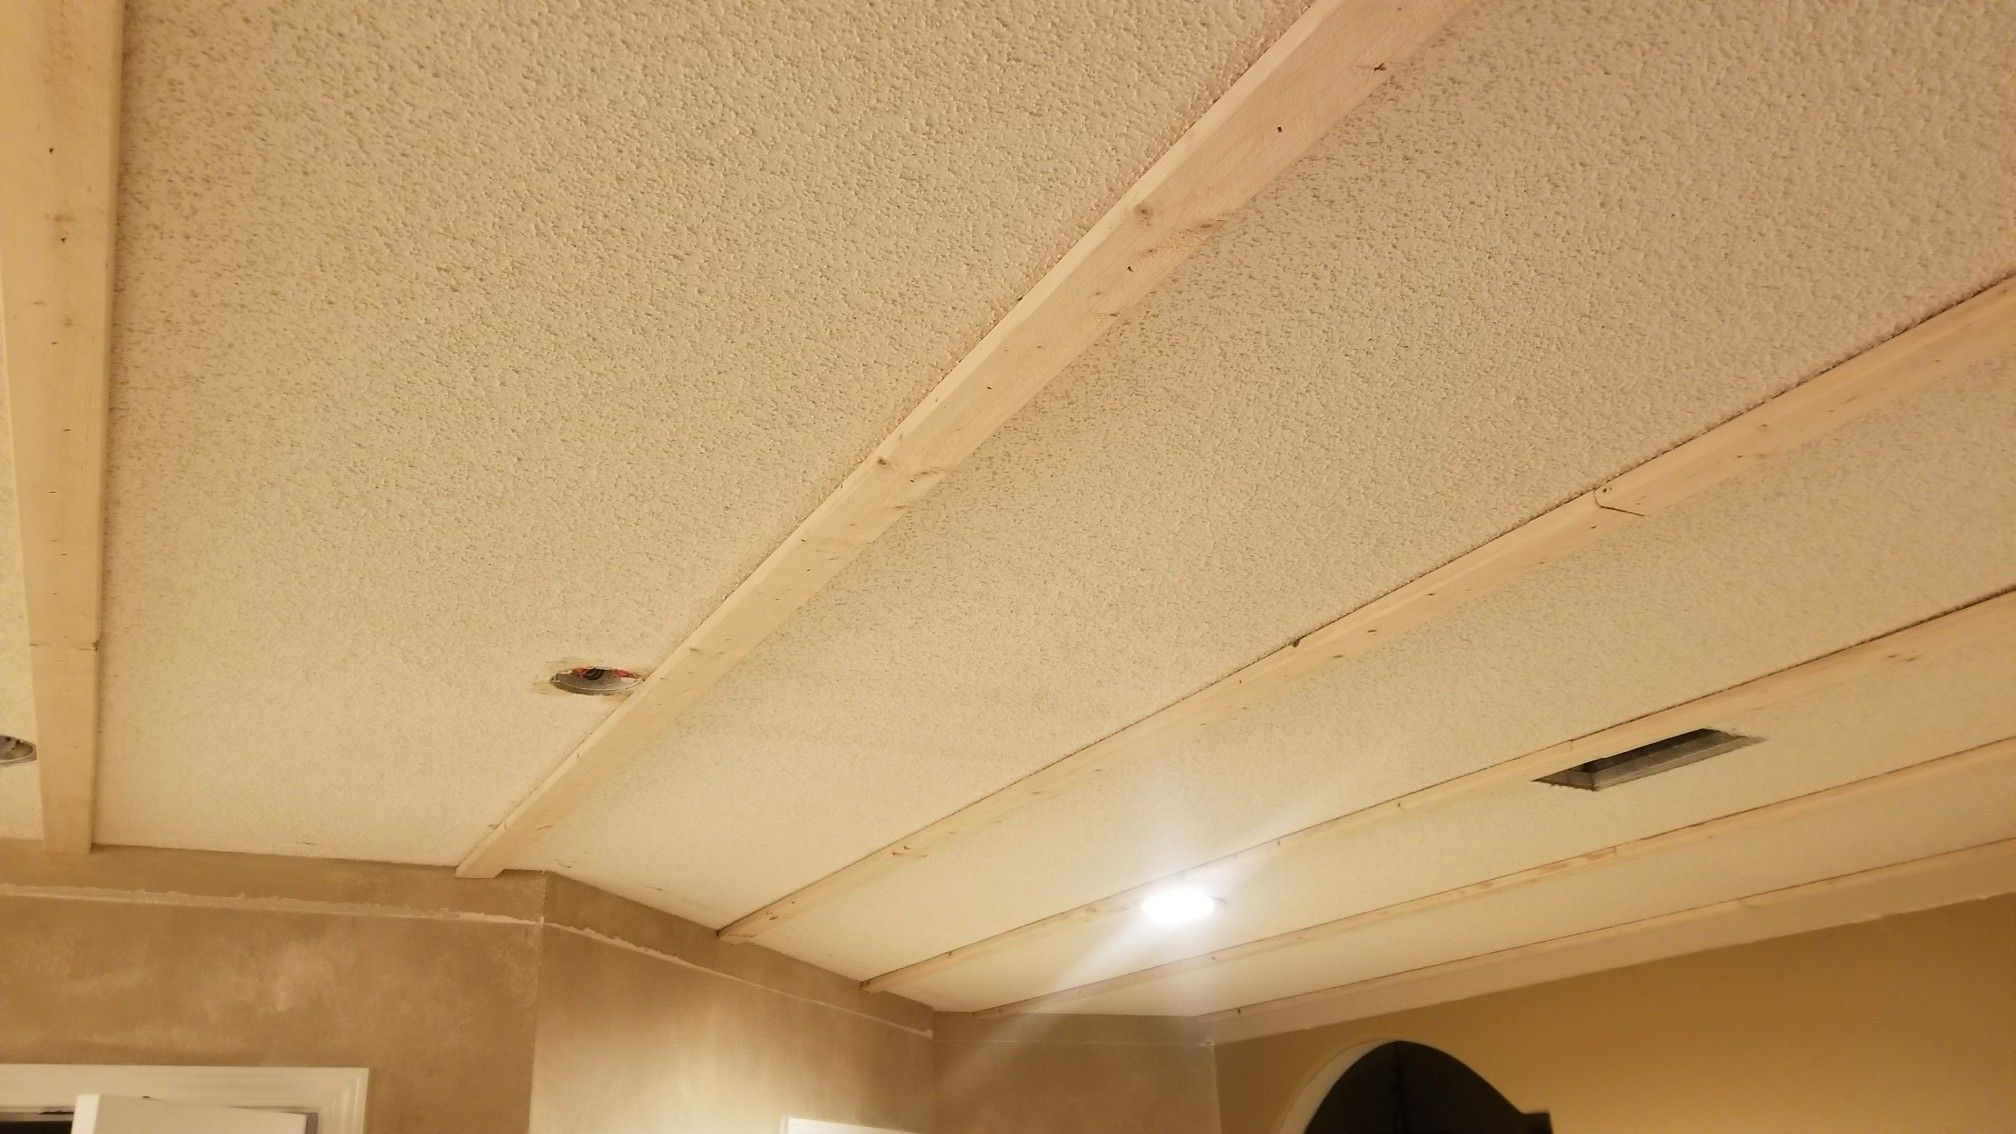 Wood Plank Ceiling Over Popcorn